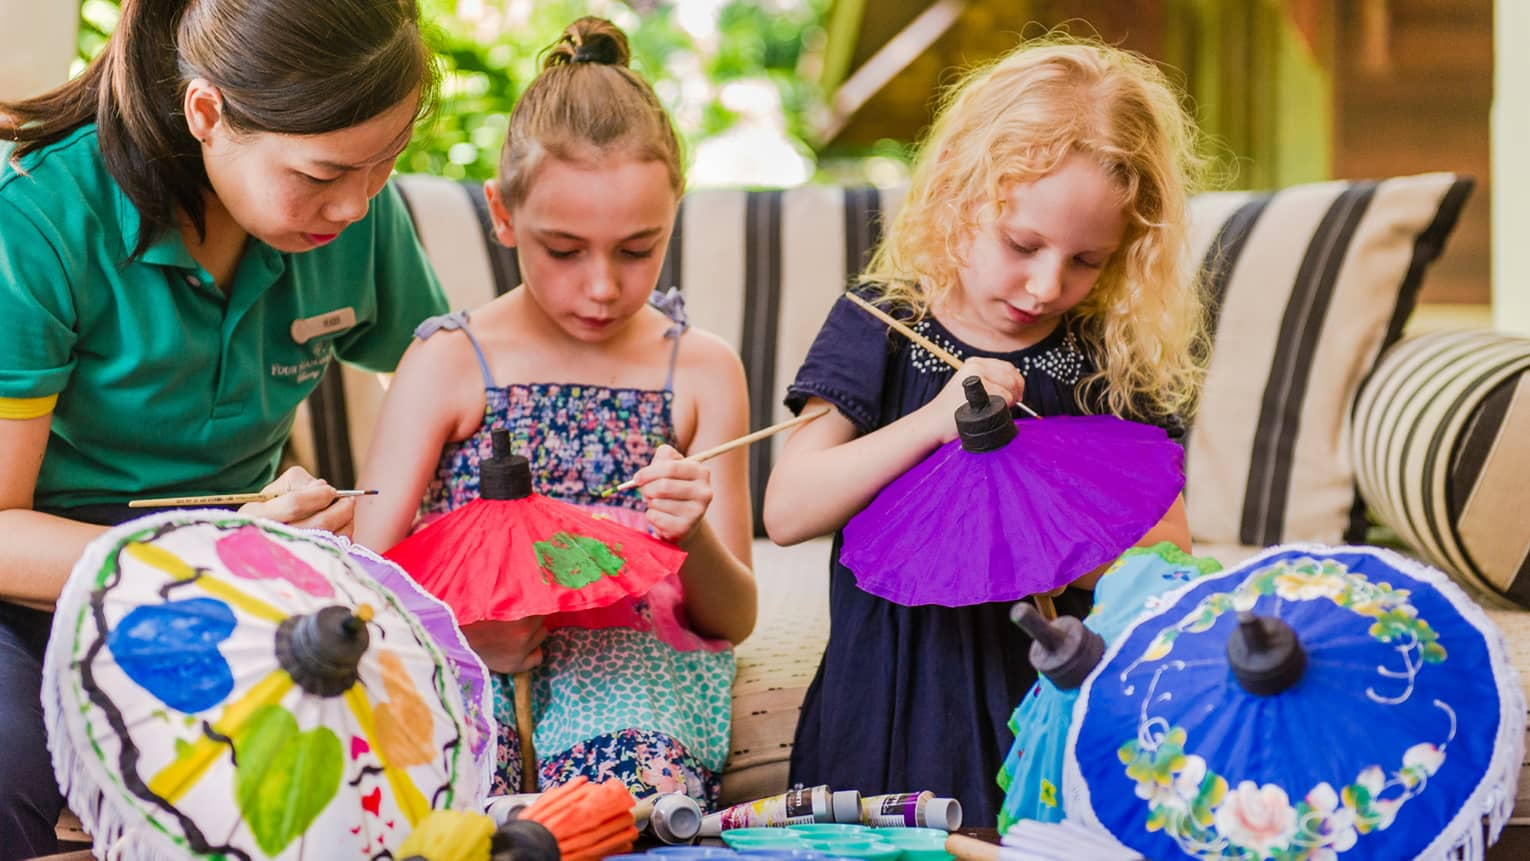 Kids Club staff helps young girls paint pictures on colourful paper umbrellas